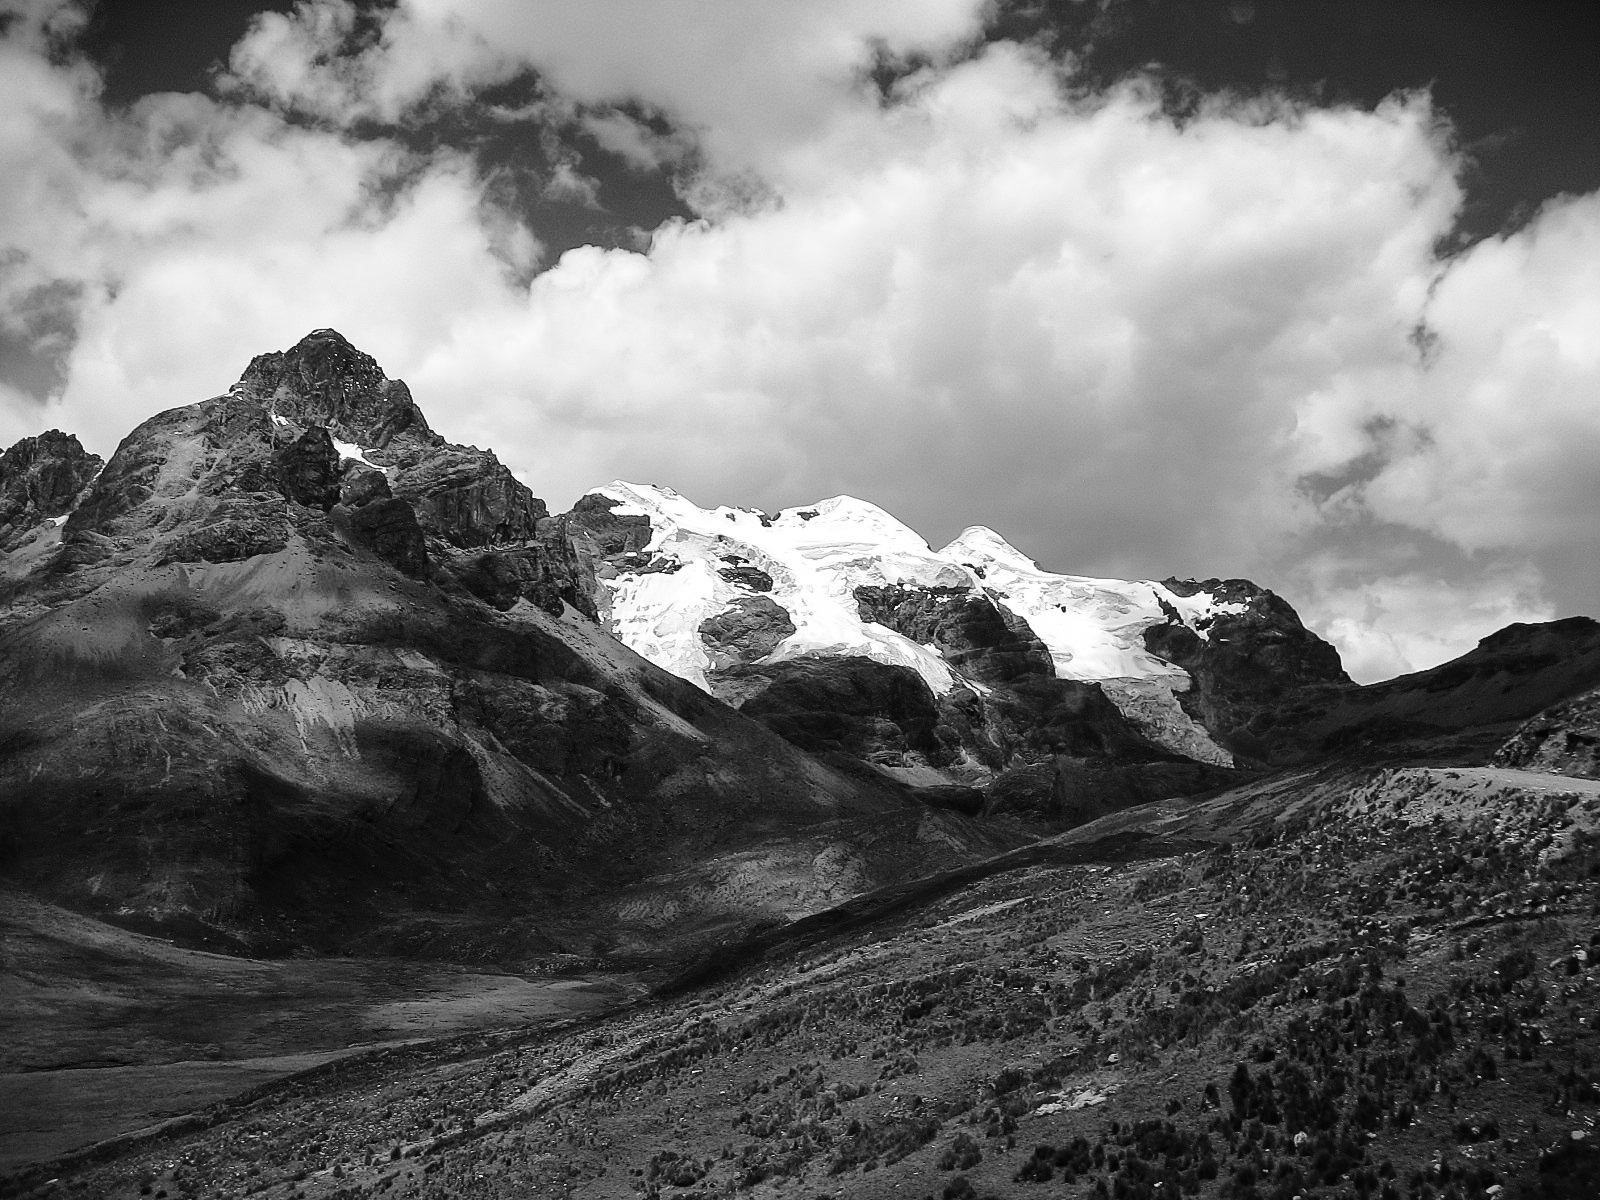 huaraz_puma-pampa_aguas-gasificadas-1071-_partly-snowcovered-mountains-and-valley.jpg